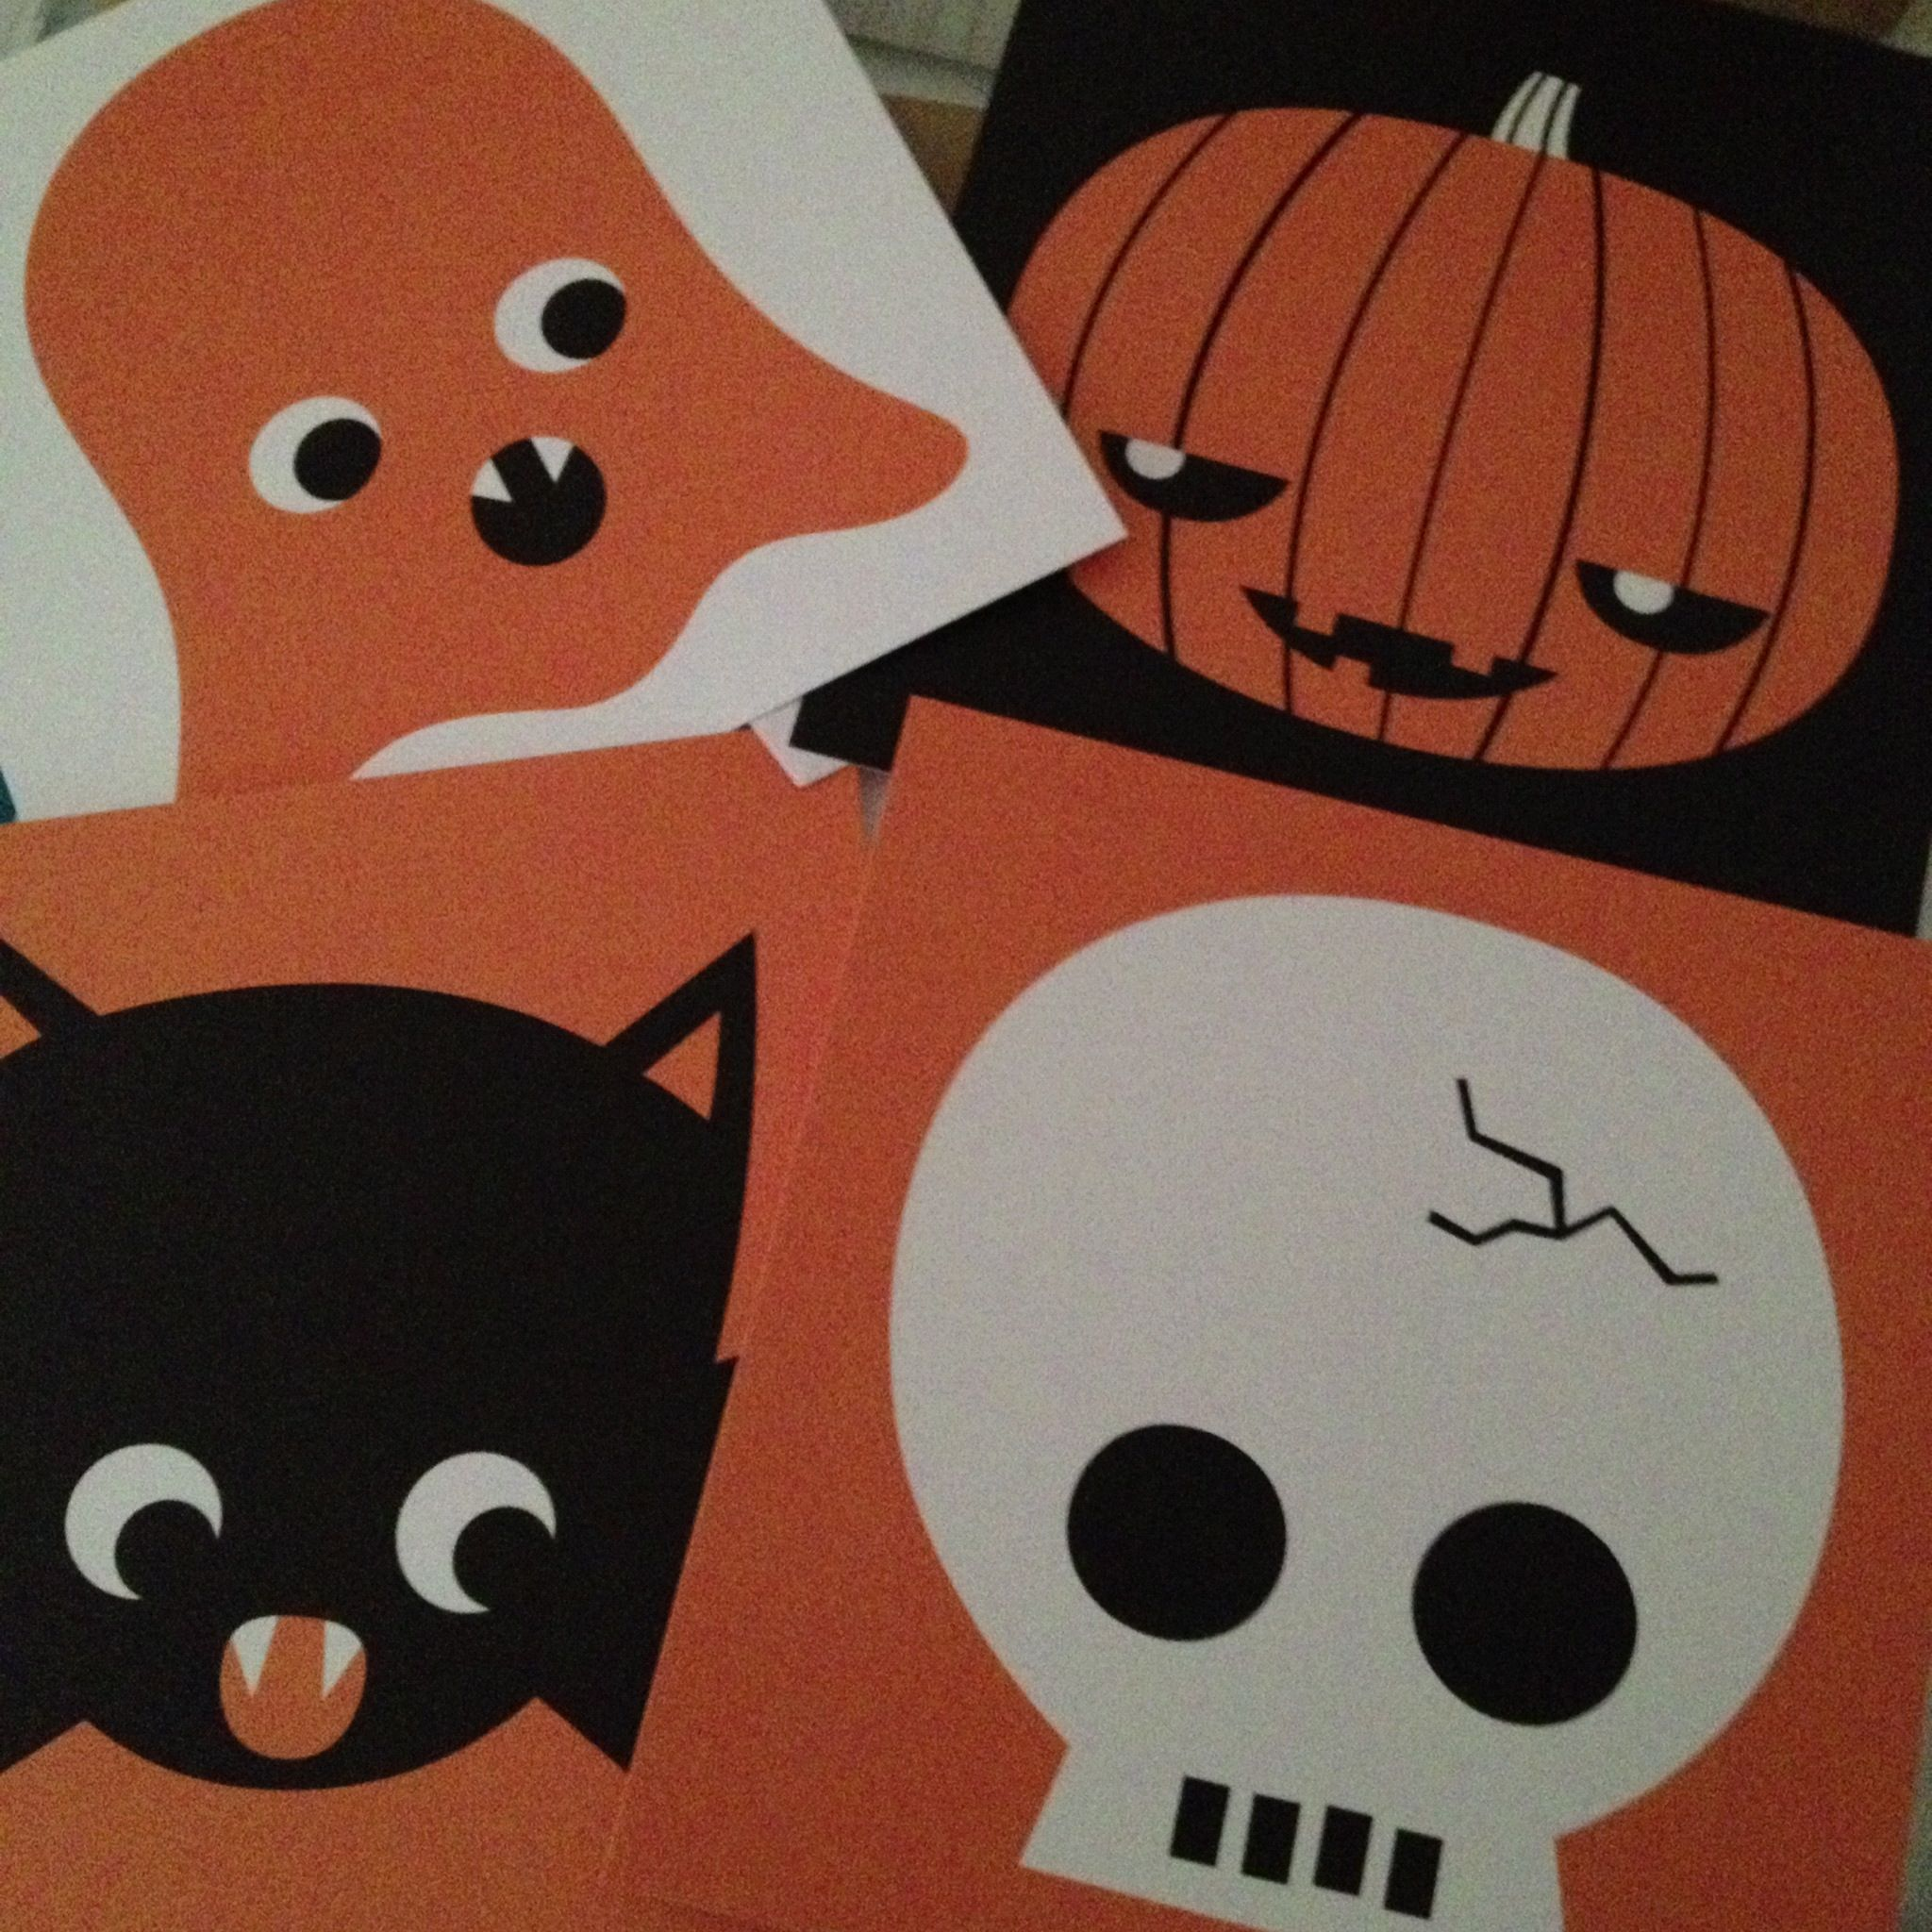 Lovely Halloween cards by Anna Lindsten.